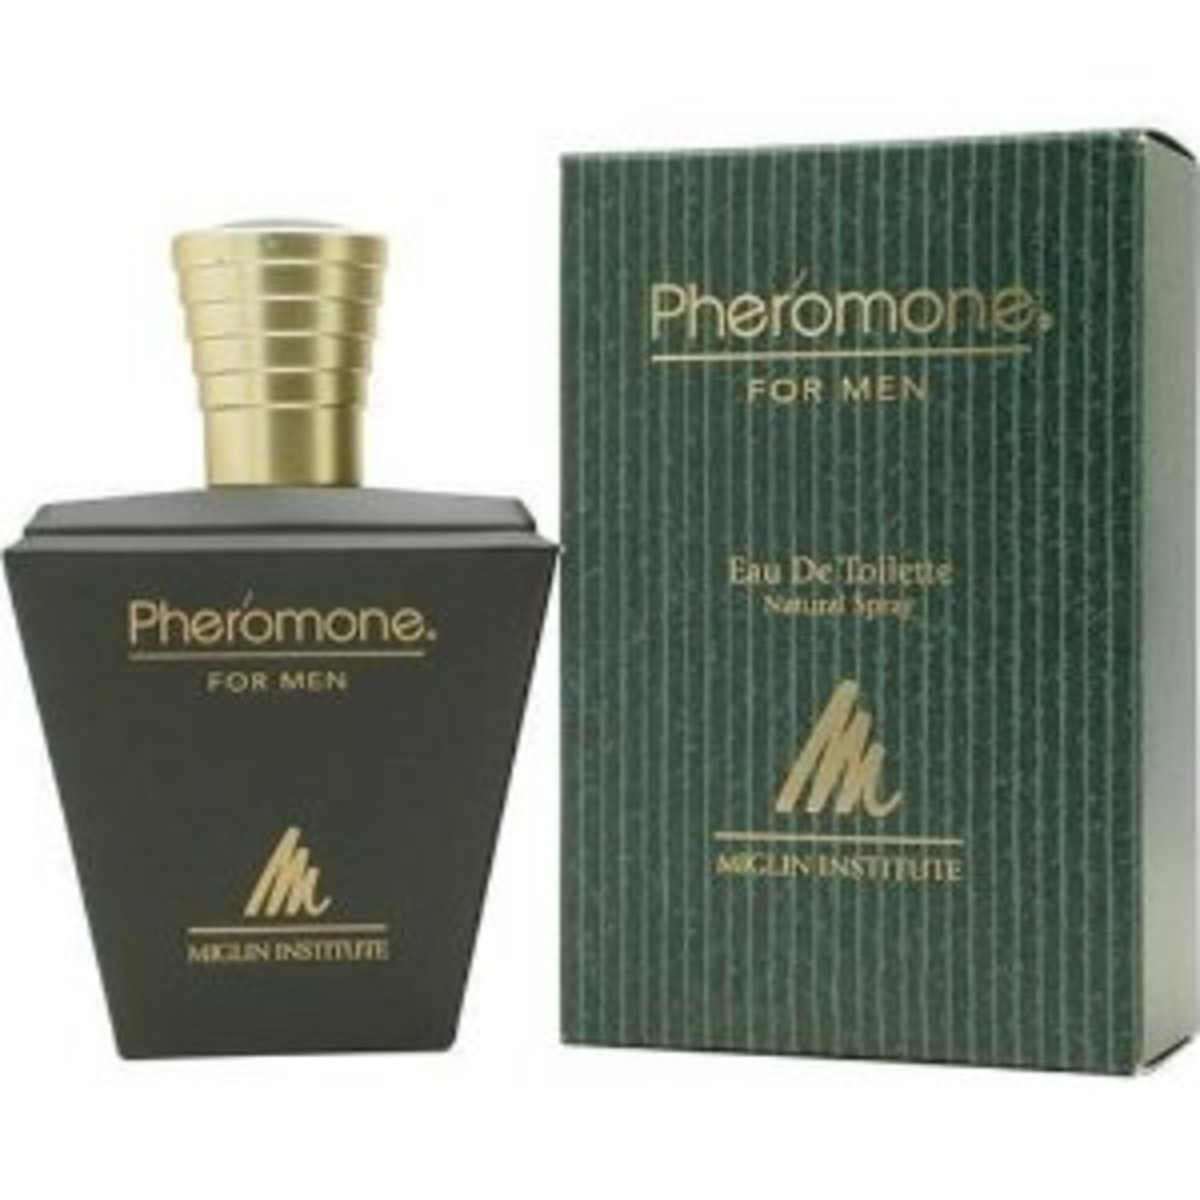 Pheromone based cologne